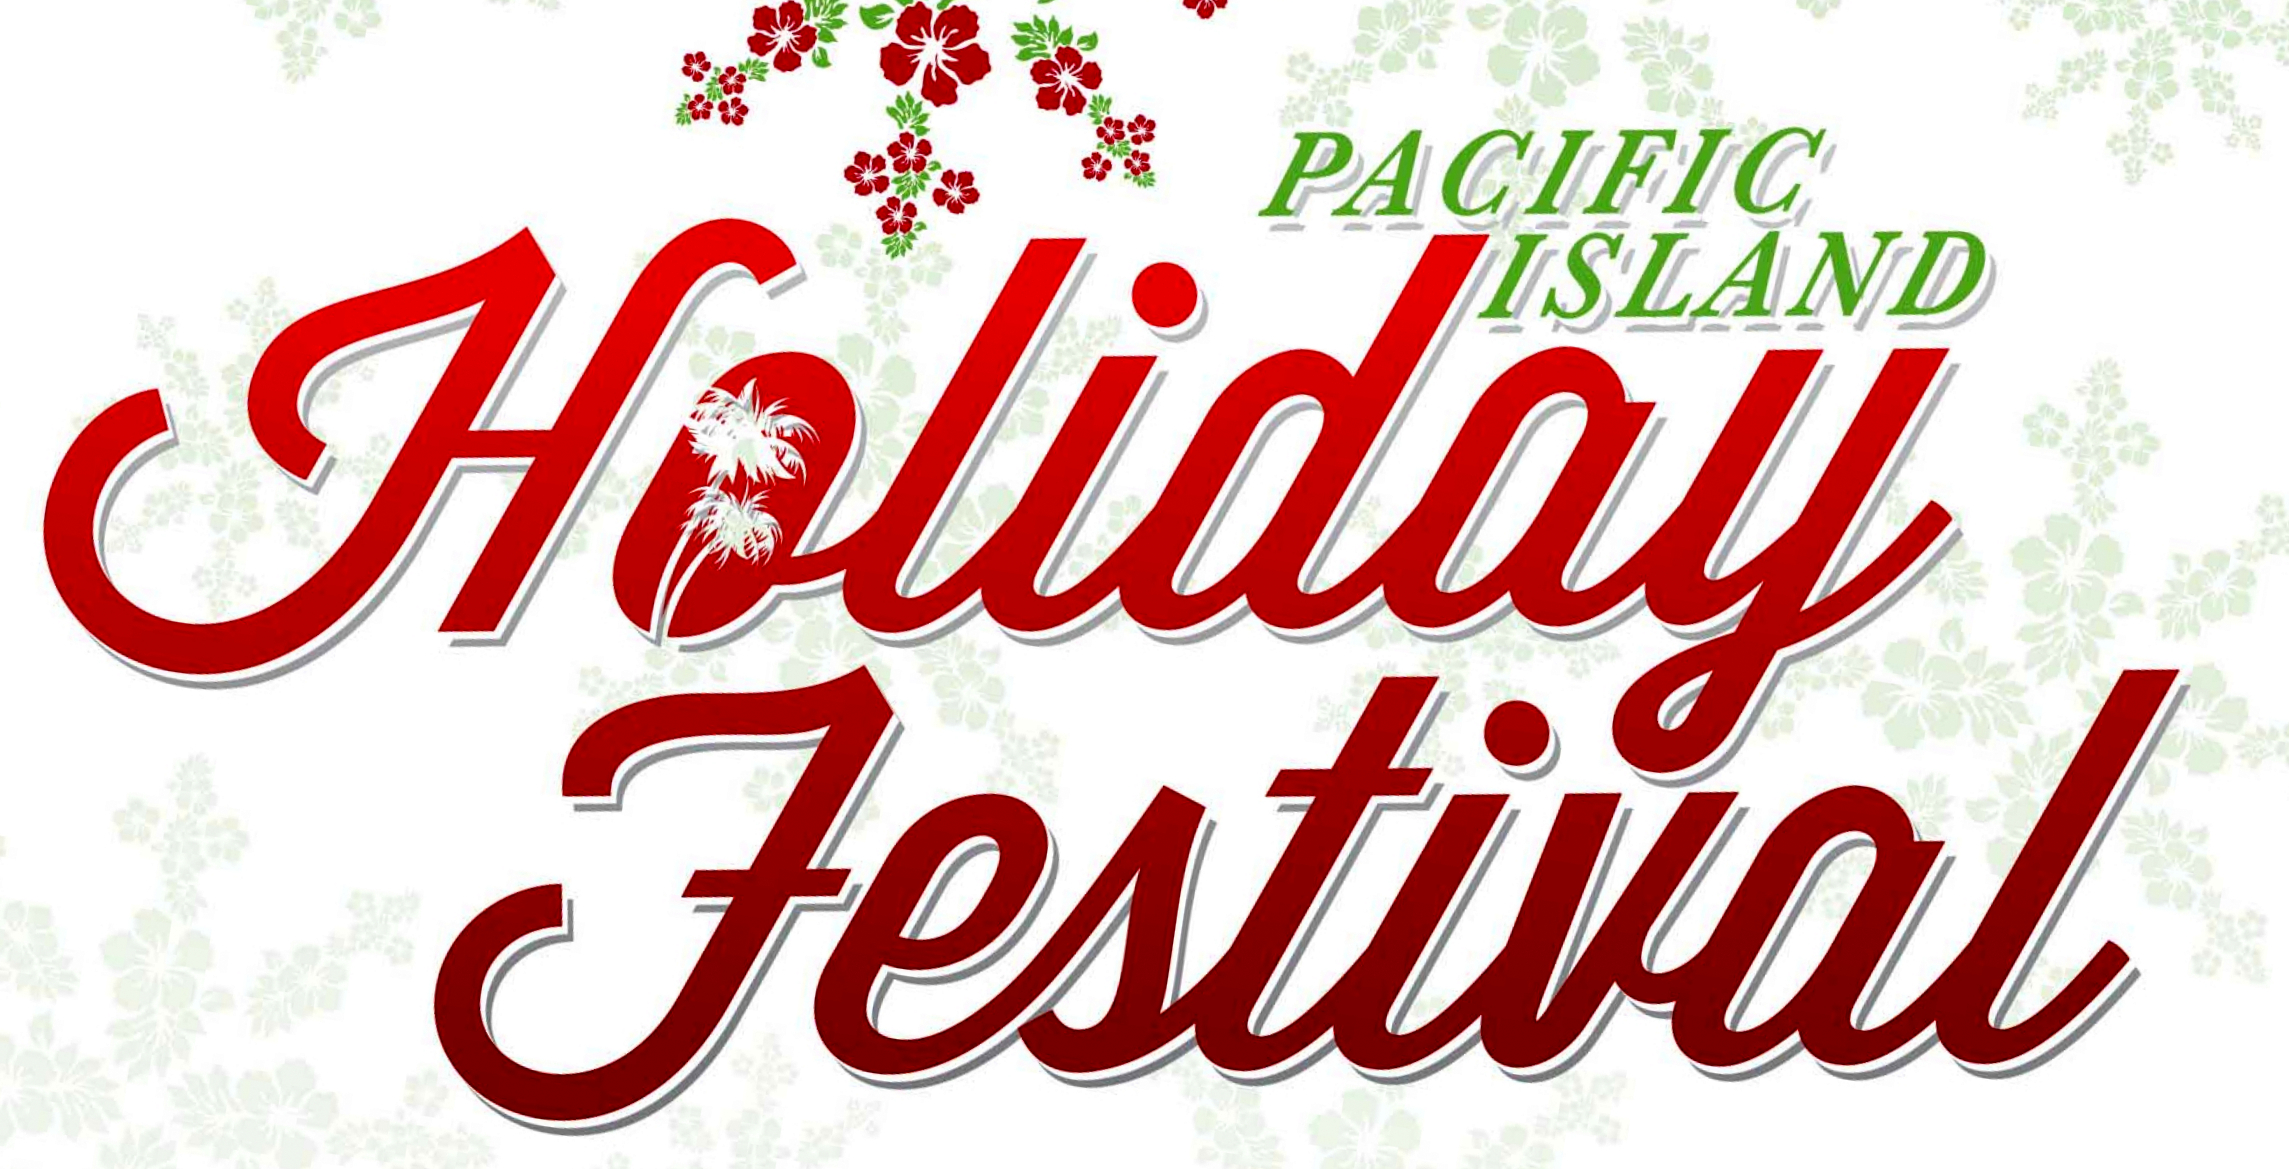 Pacific Islander Holiday Festival